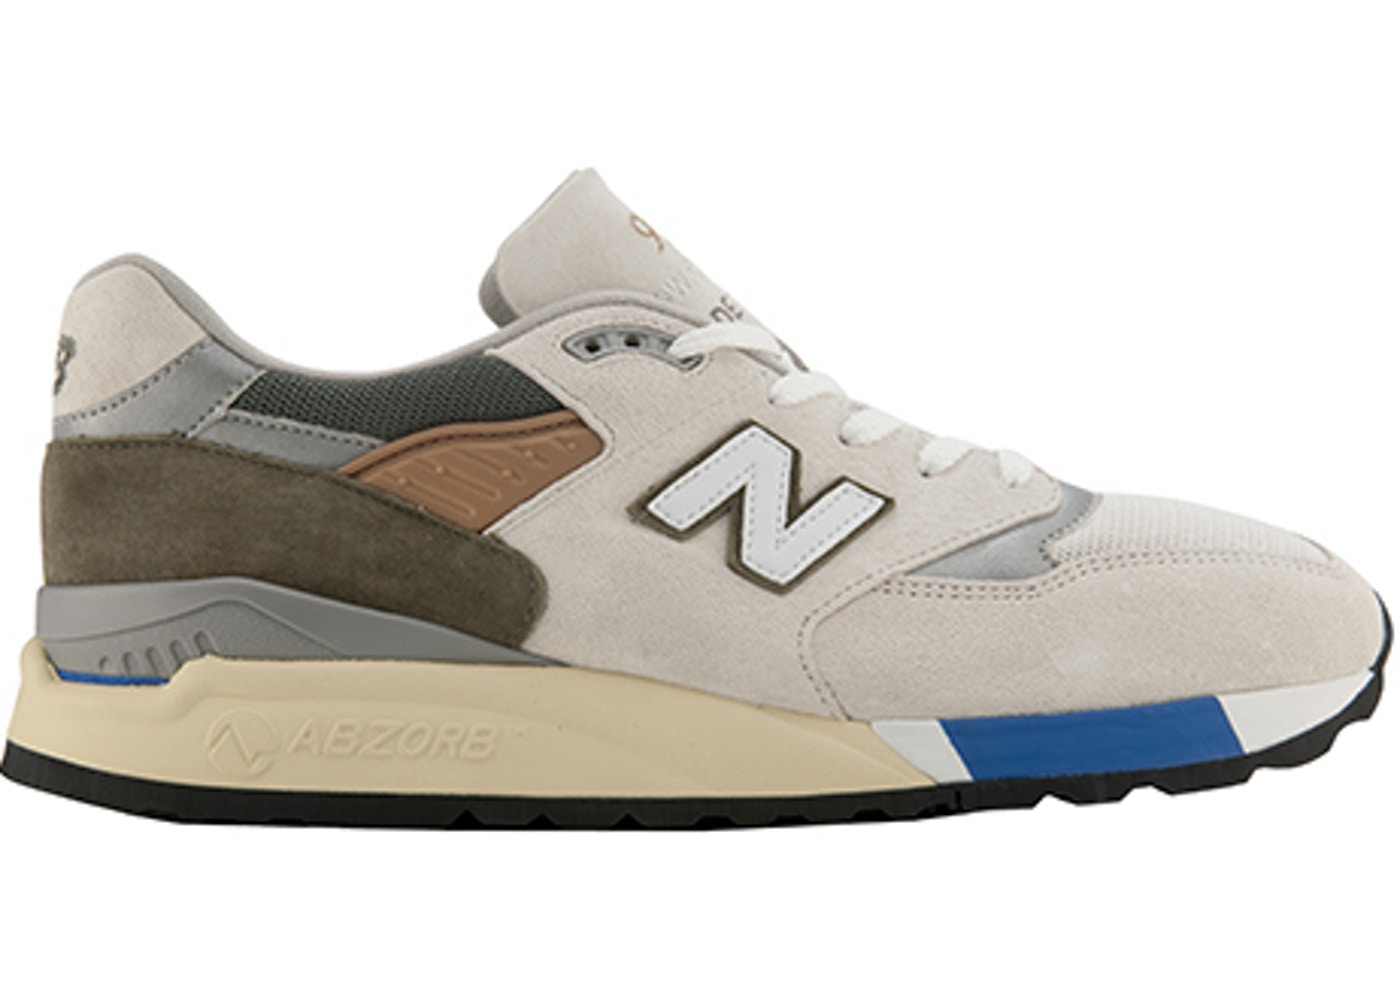 low priced 2a40d 561c6 New Balance 998 Concepts